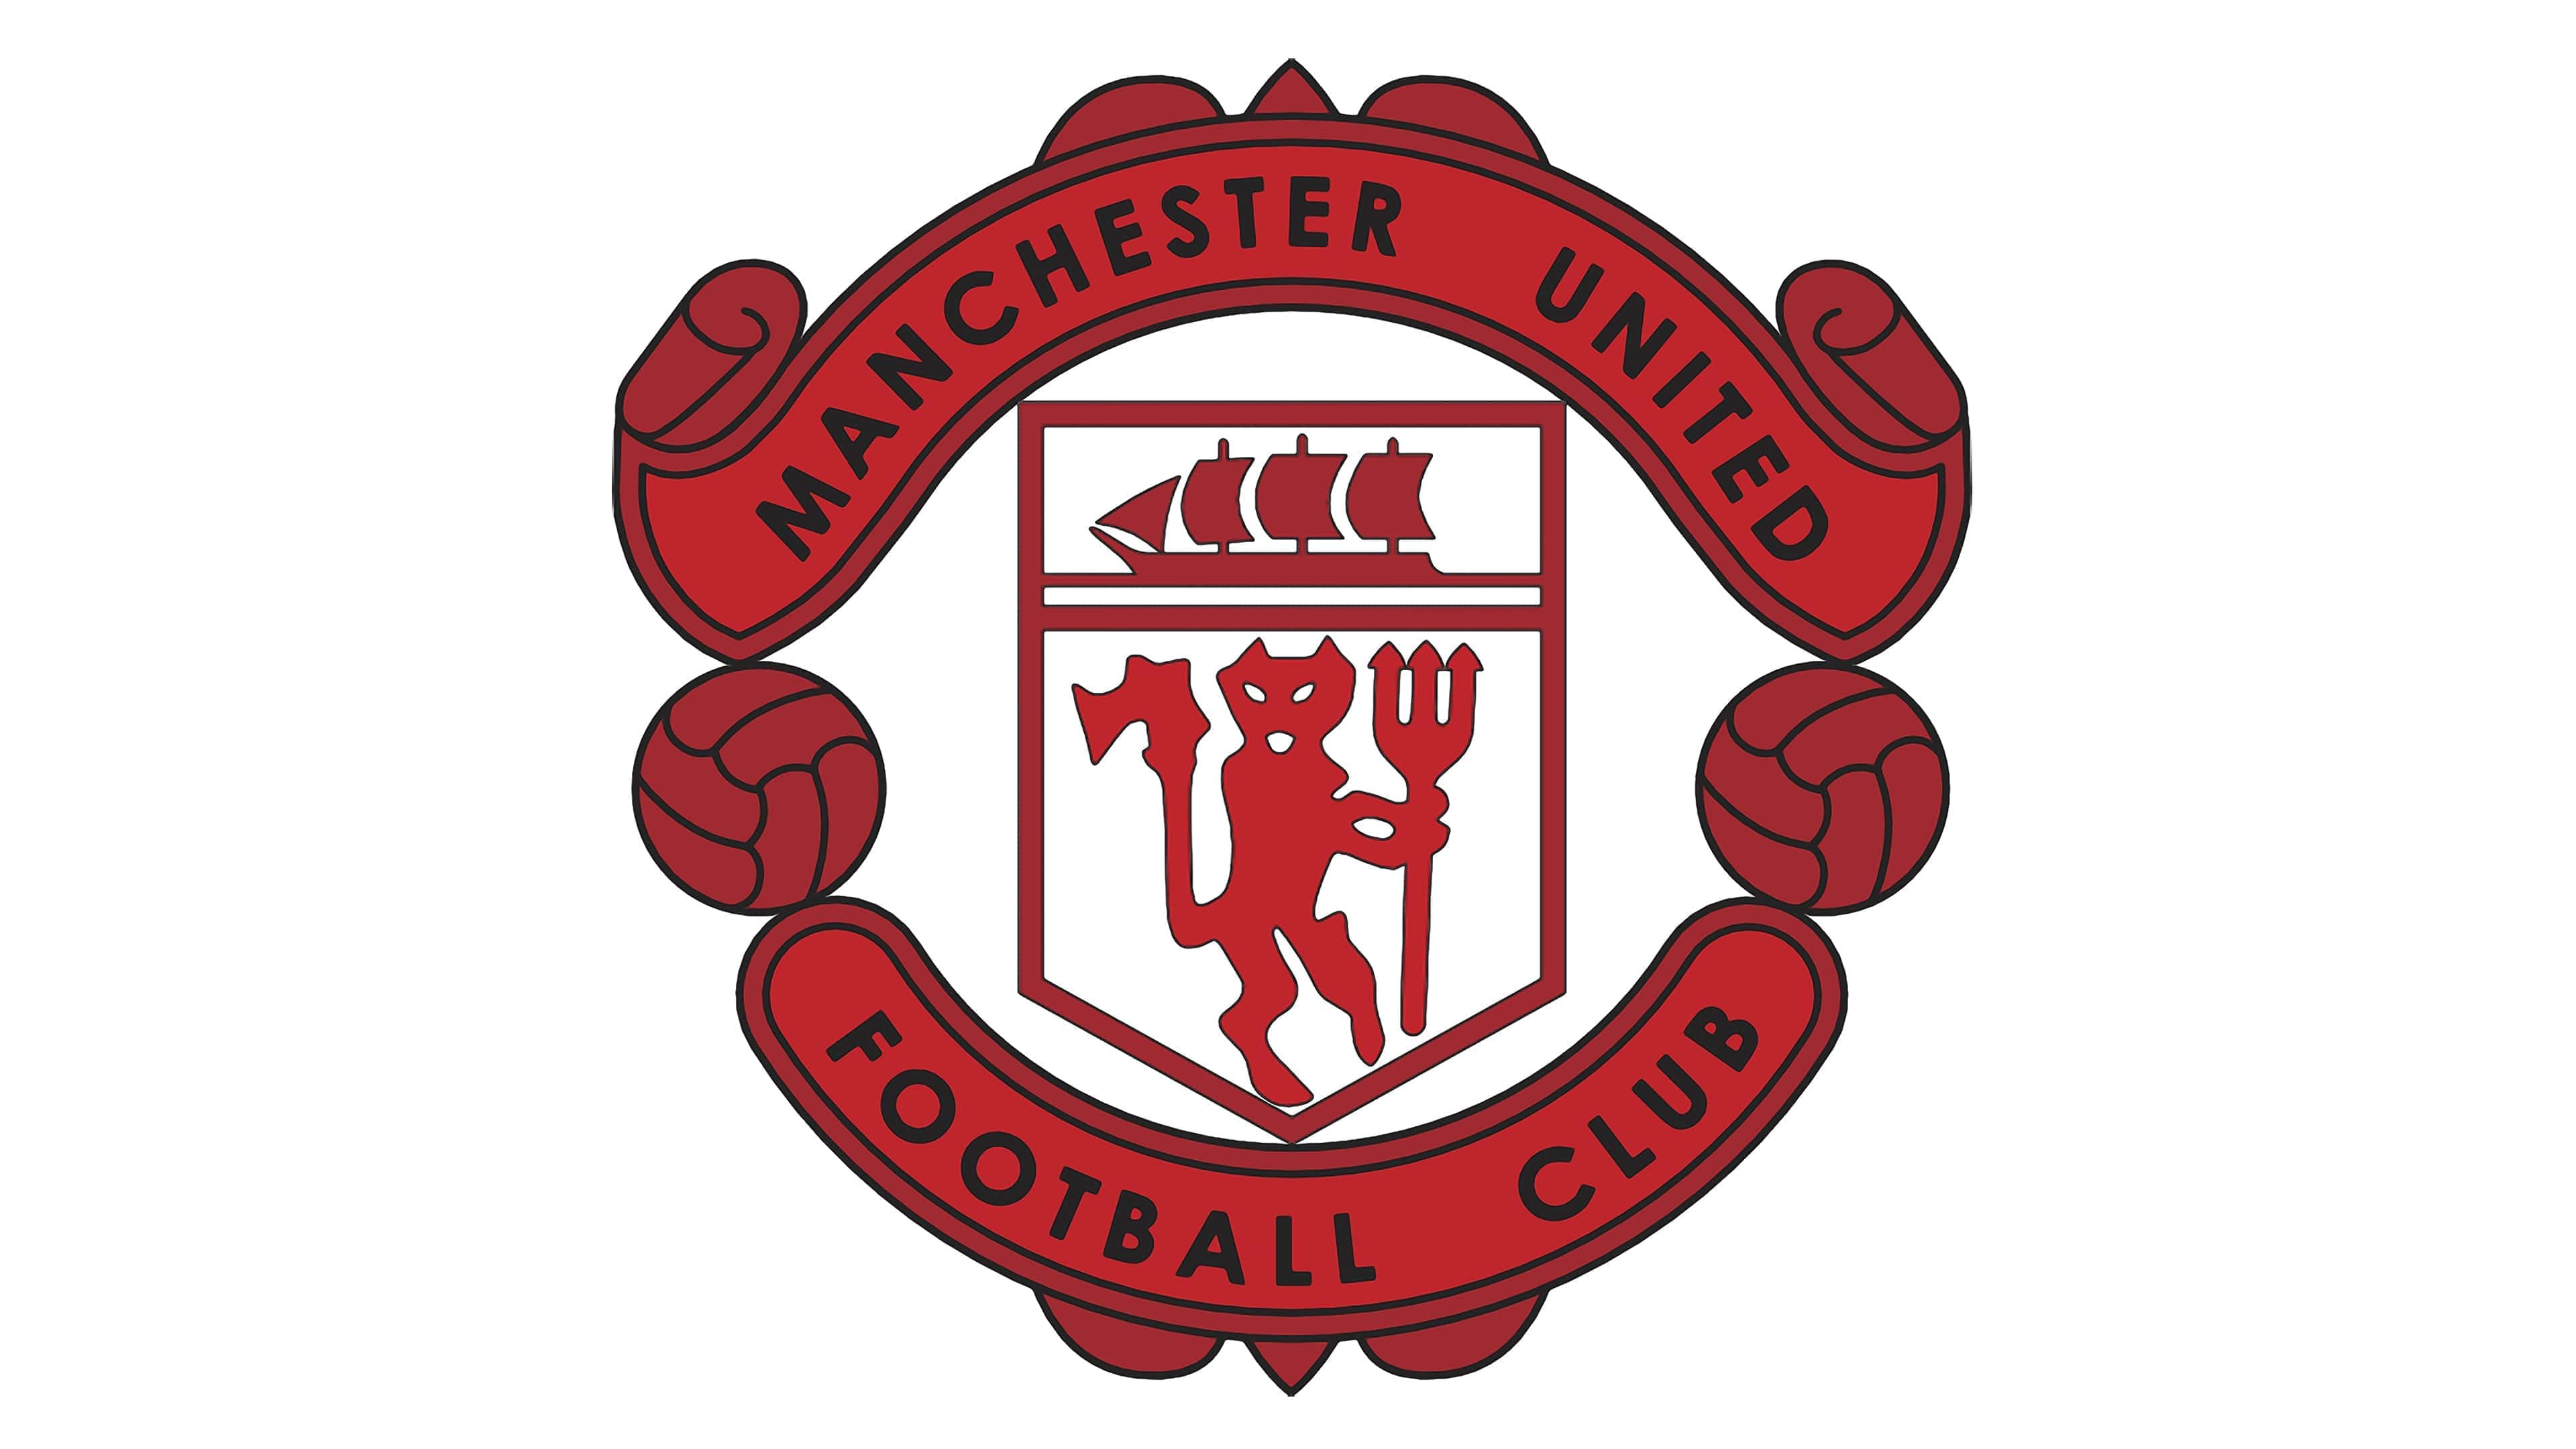 manchester united logo the most famous brands and company logos in the world manchester united logo the most